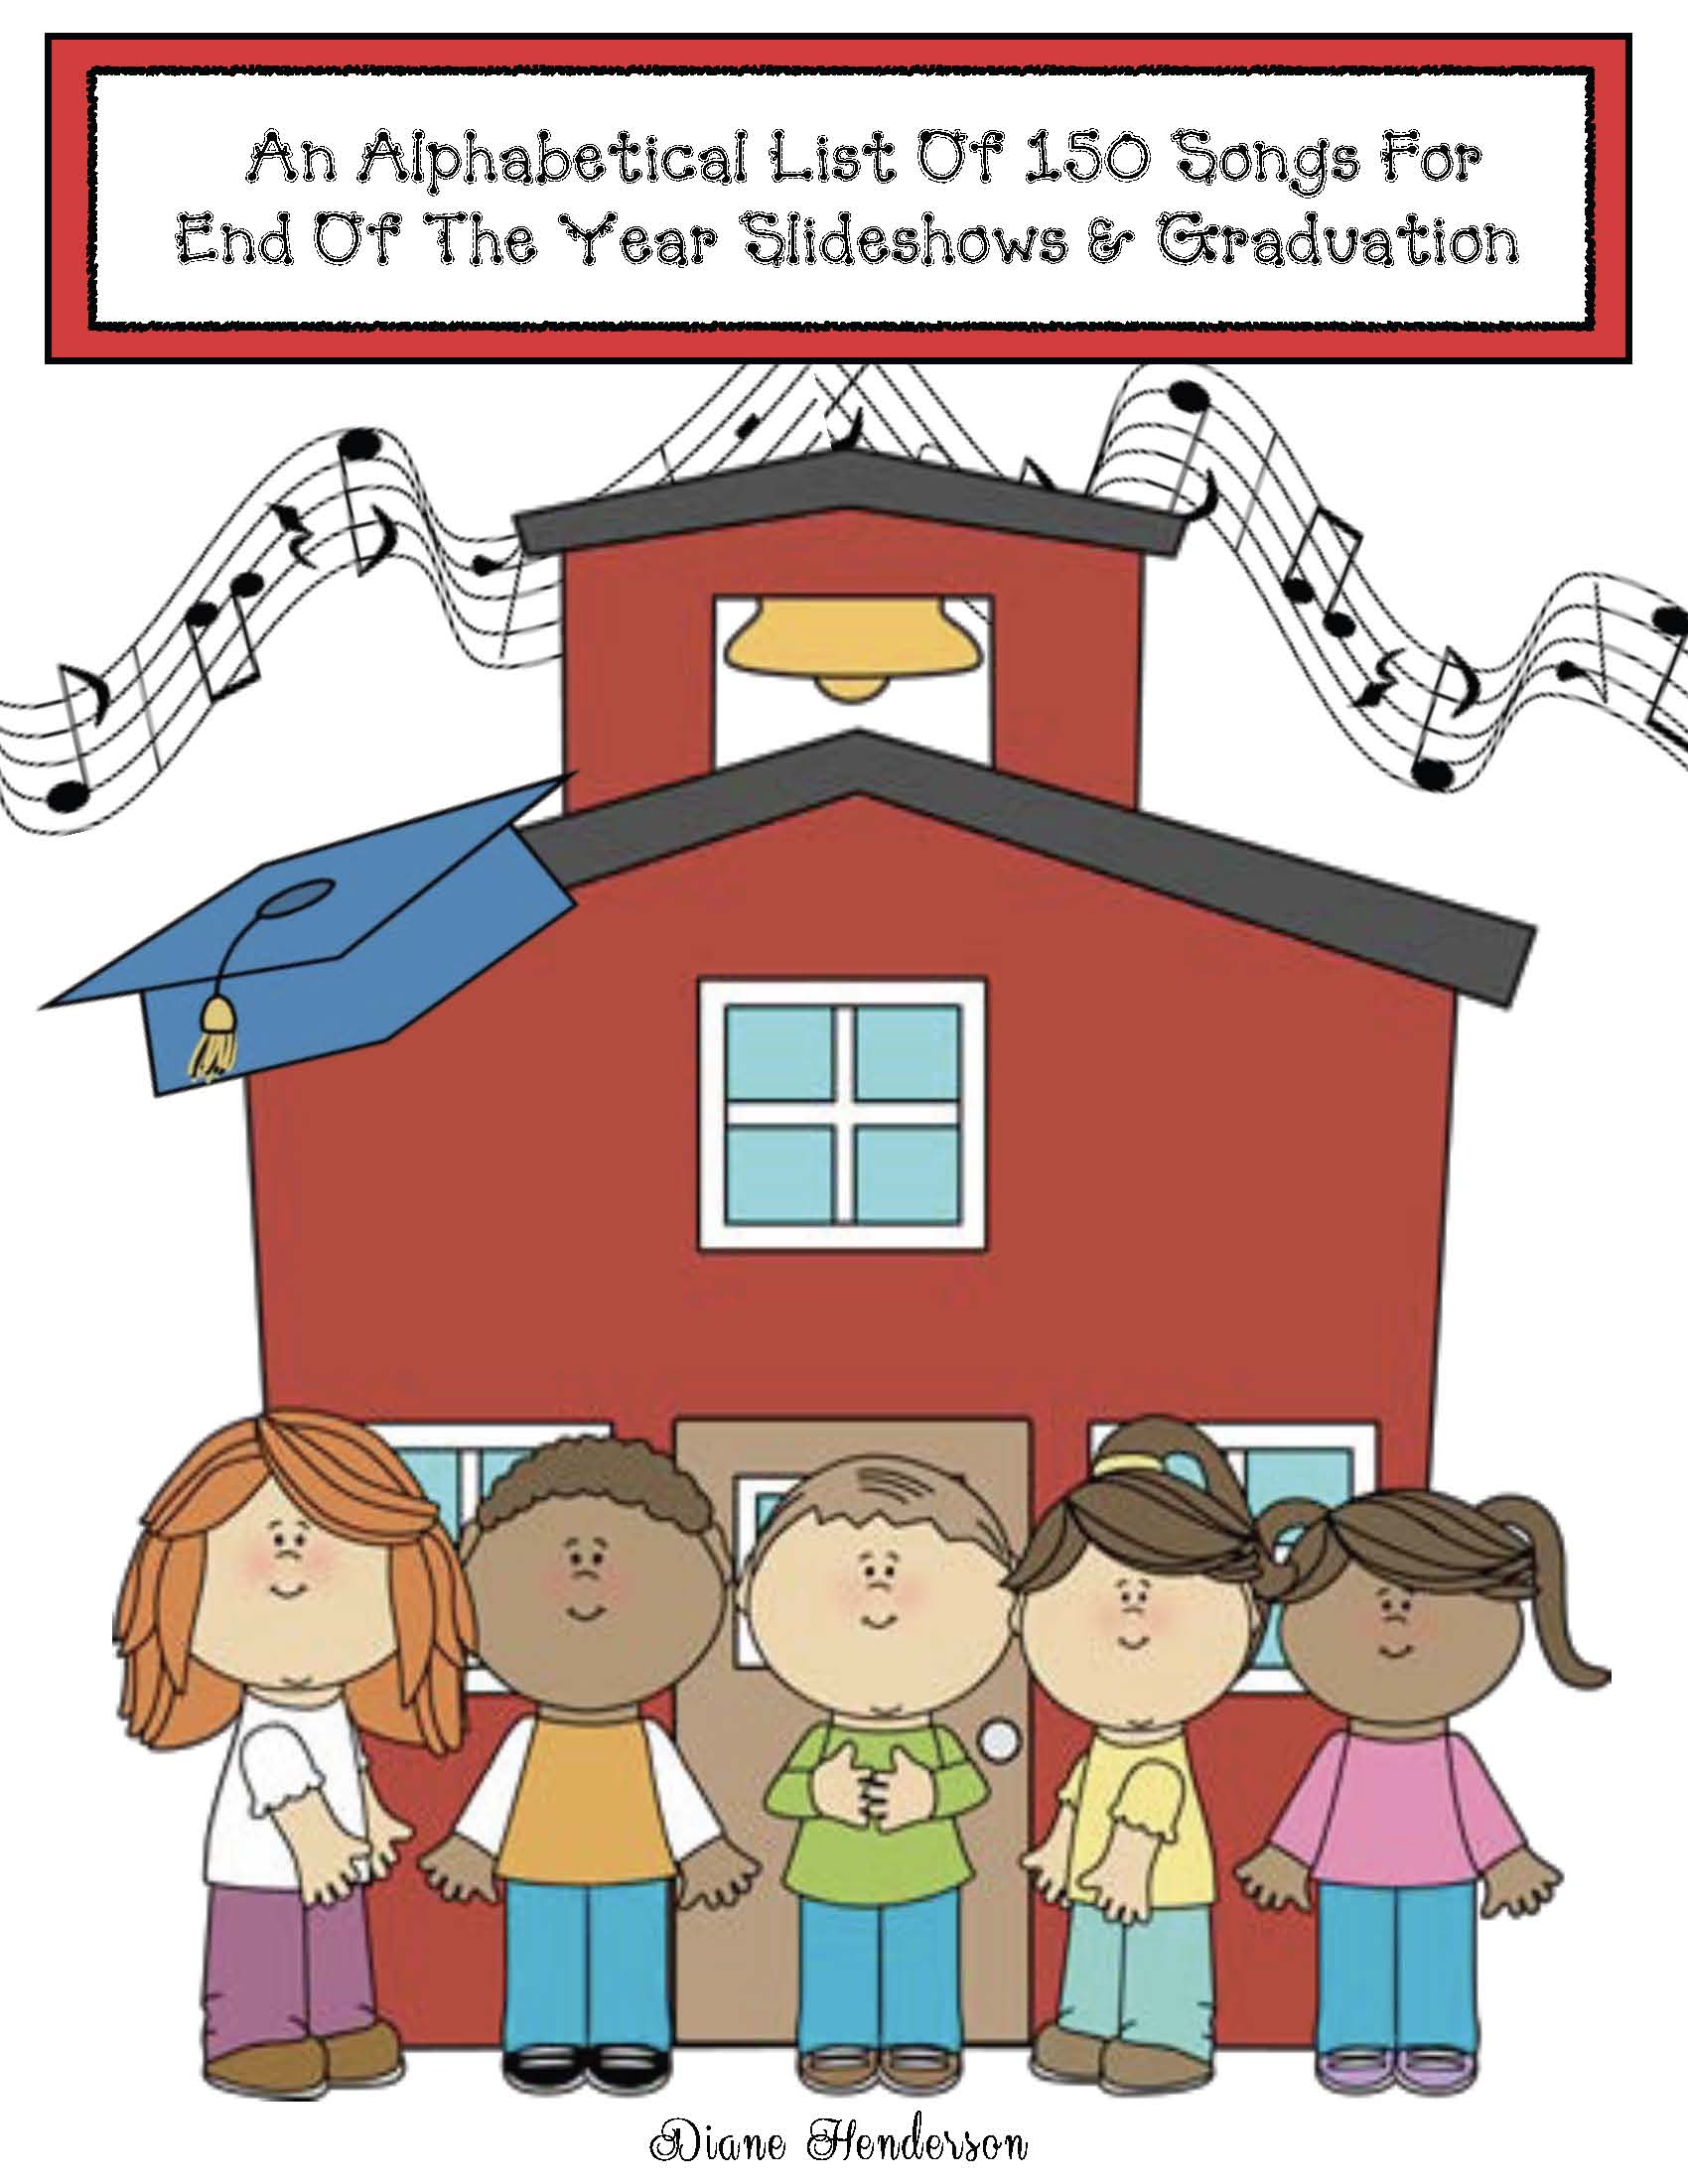 cov abc list of end of the year songs, songs for the end of the year, end of the year slide show songs, songs for preschool graduation, songs for kindergarten graduation